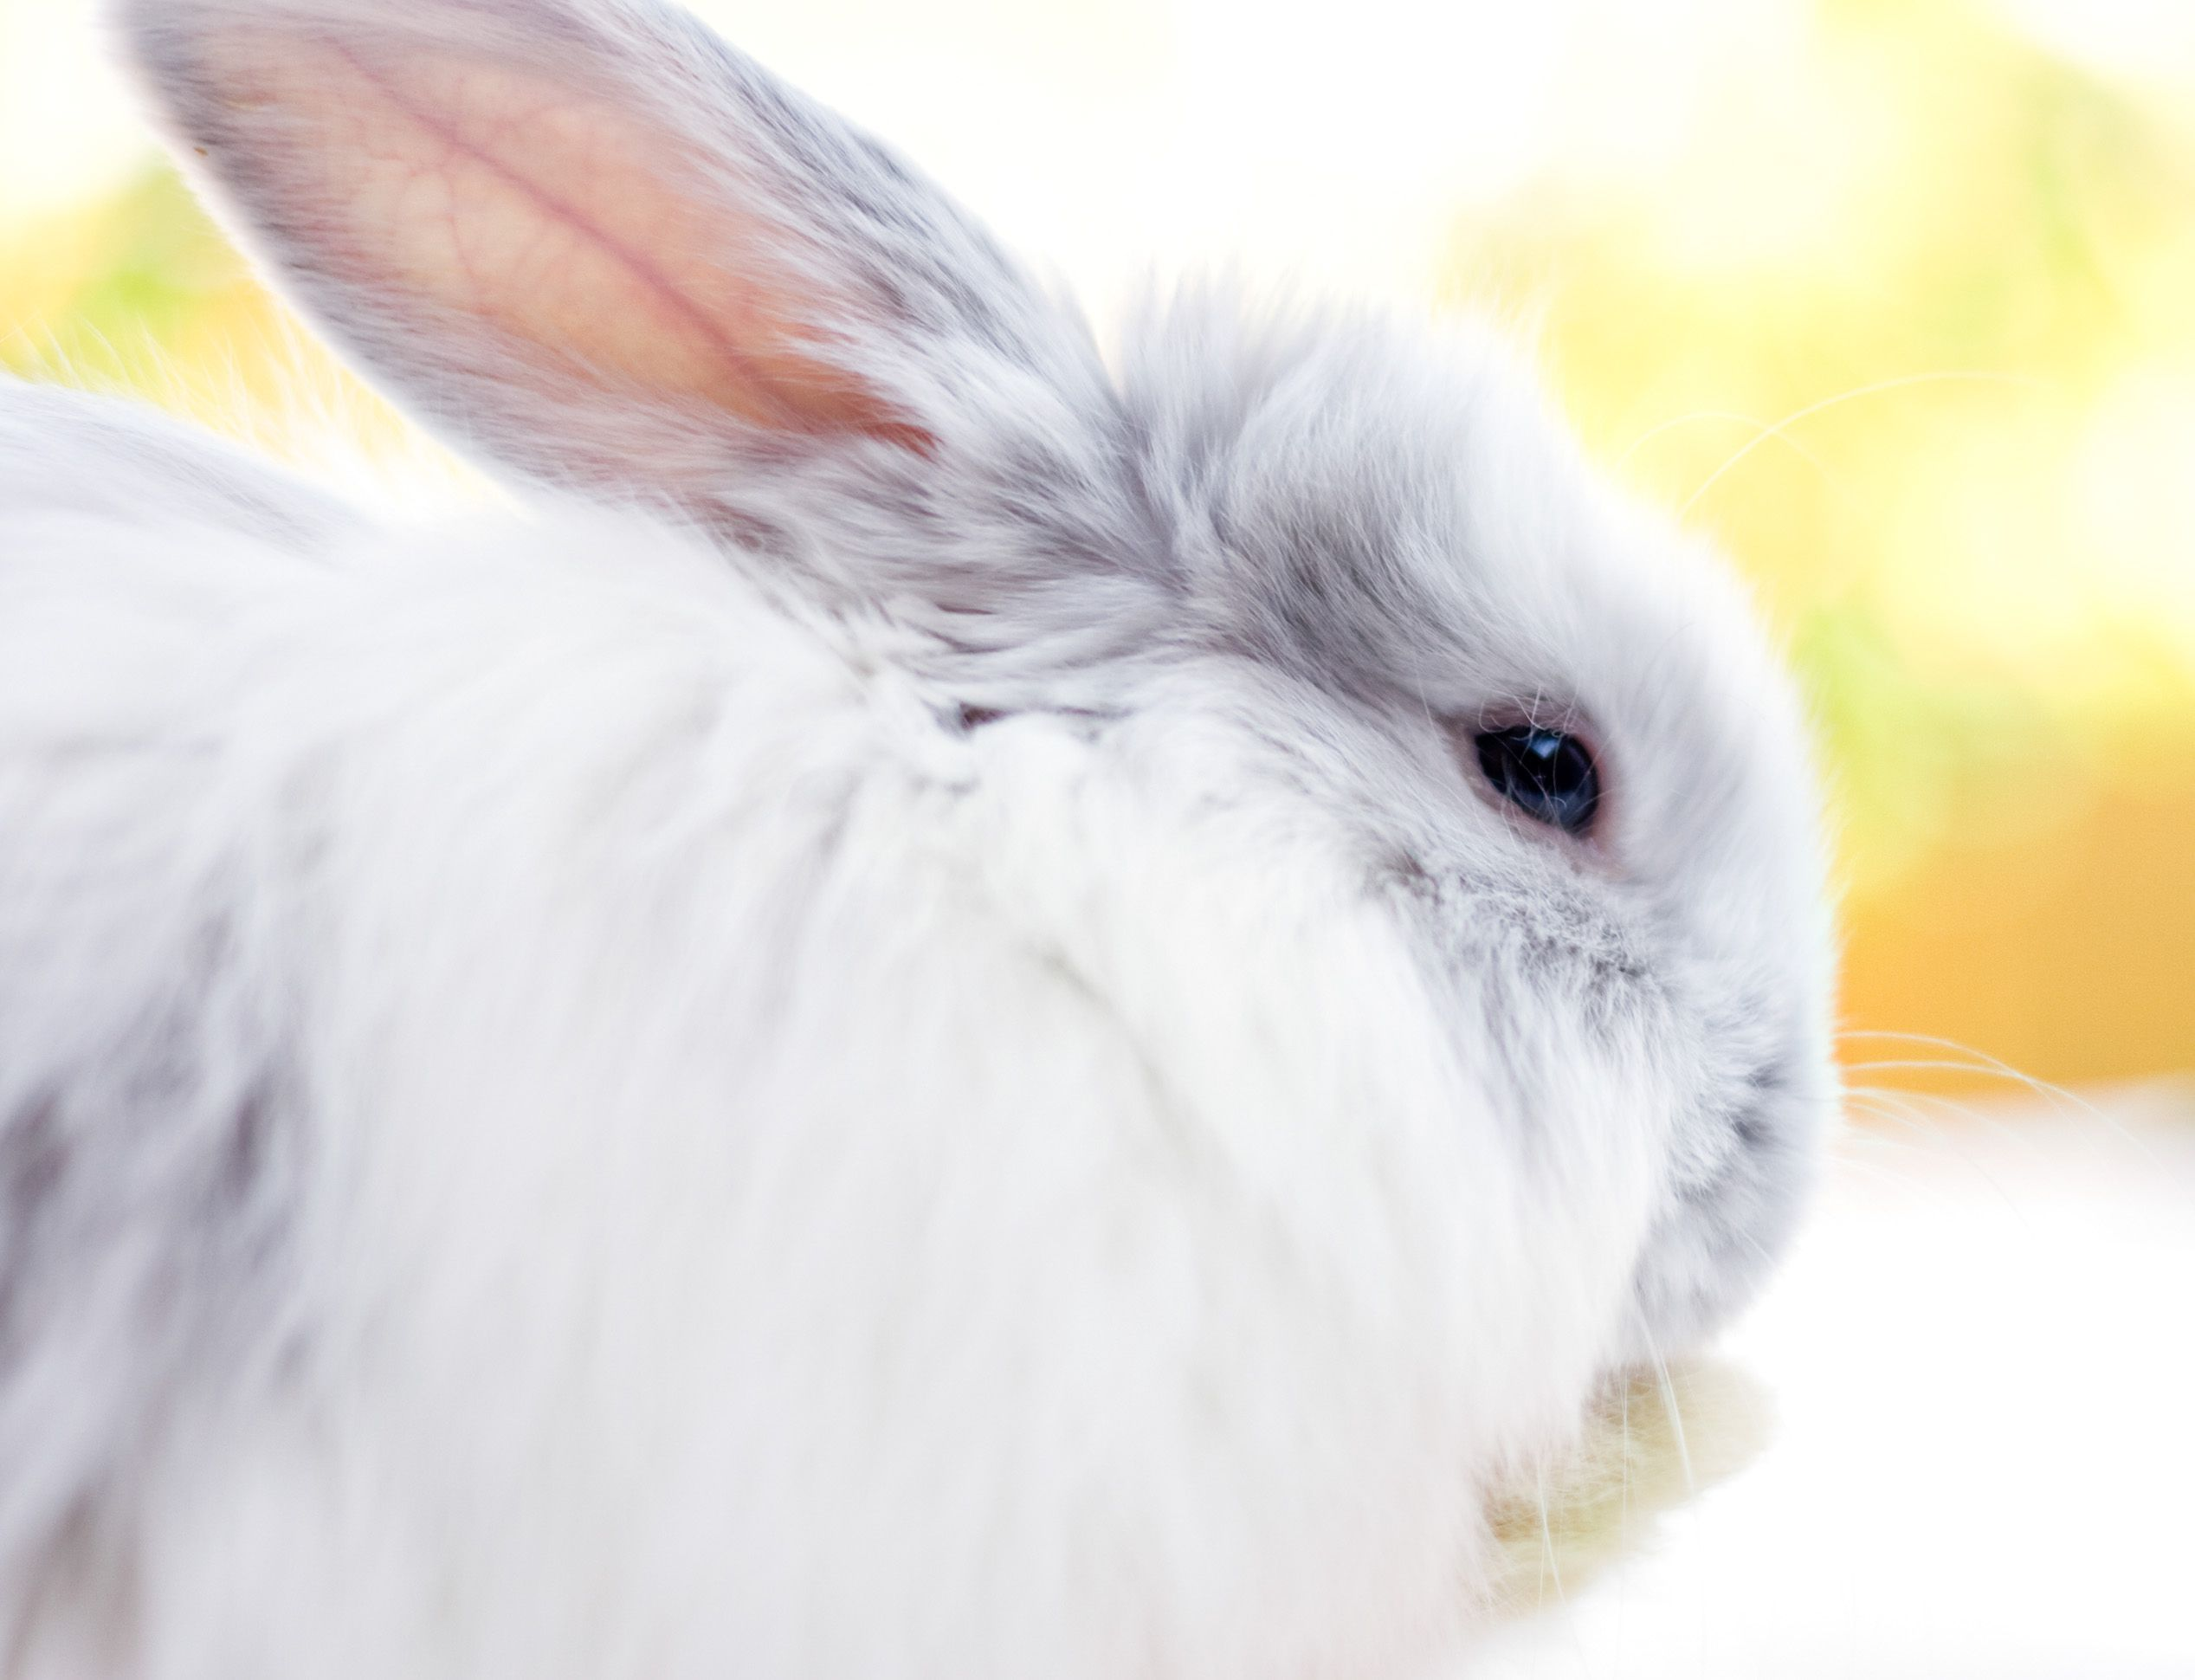 causes of itching or scratching in rabbits